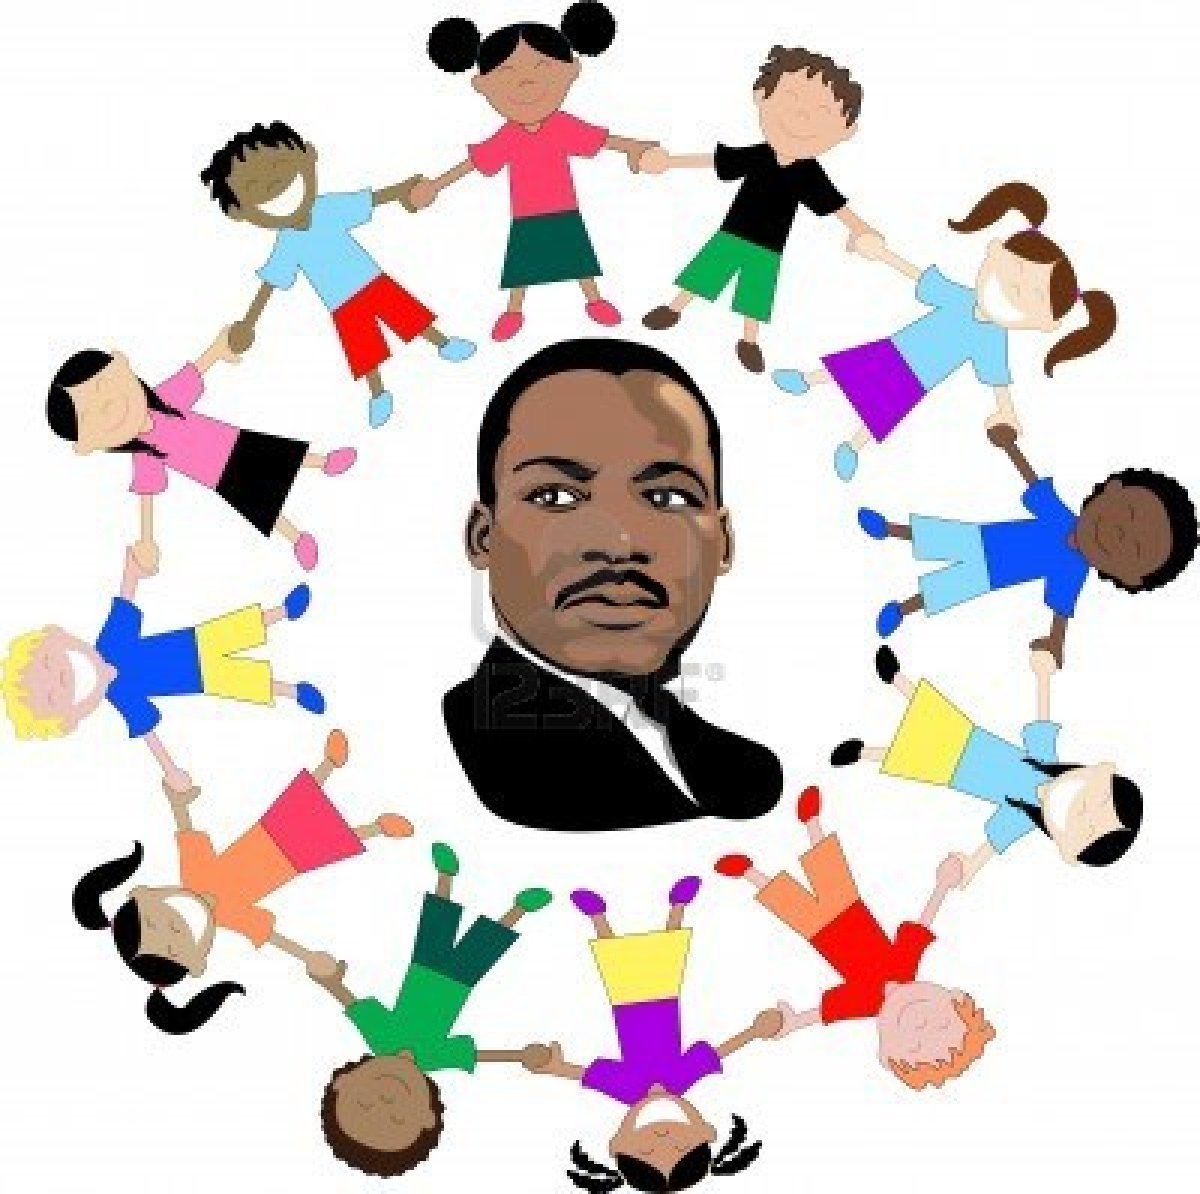 Free clipart of martin luther king jr banner black and white Martin Luther King Jr Day Clipart | Clipart Panda - Free Clipart Images banner black and white